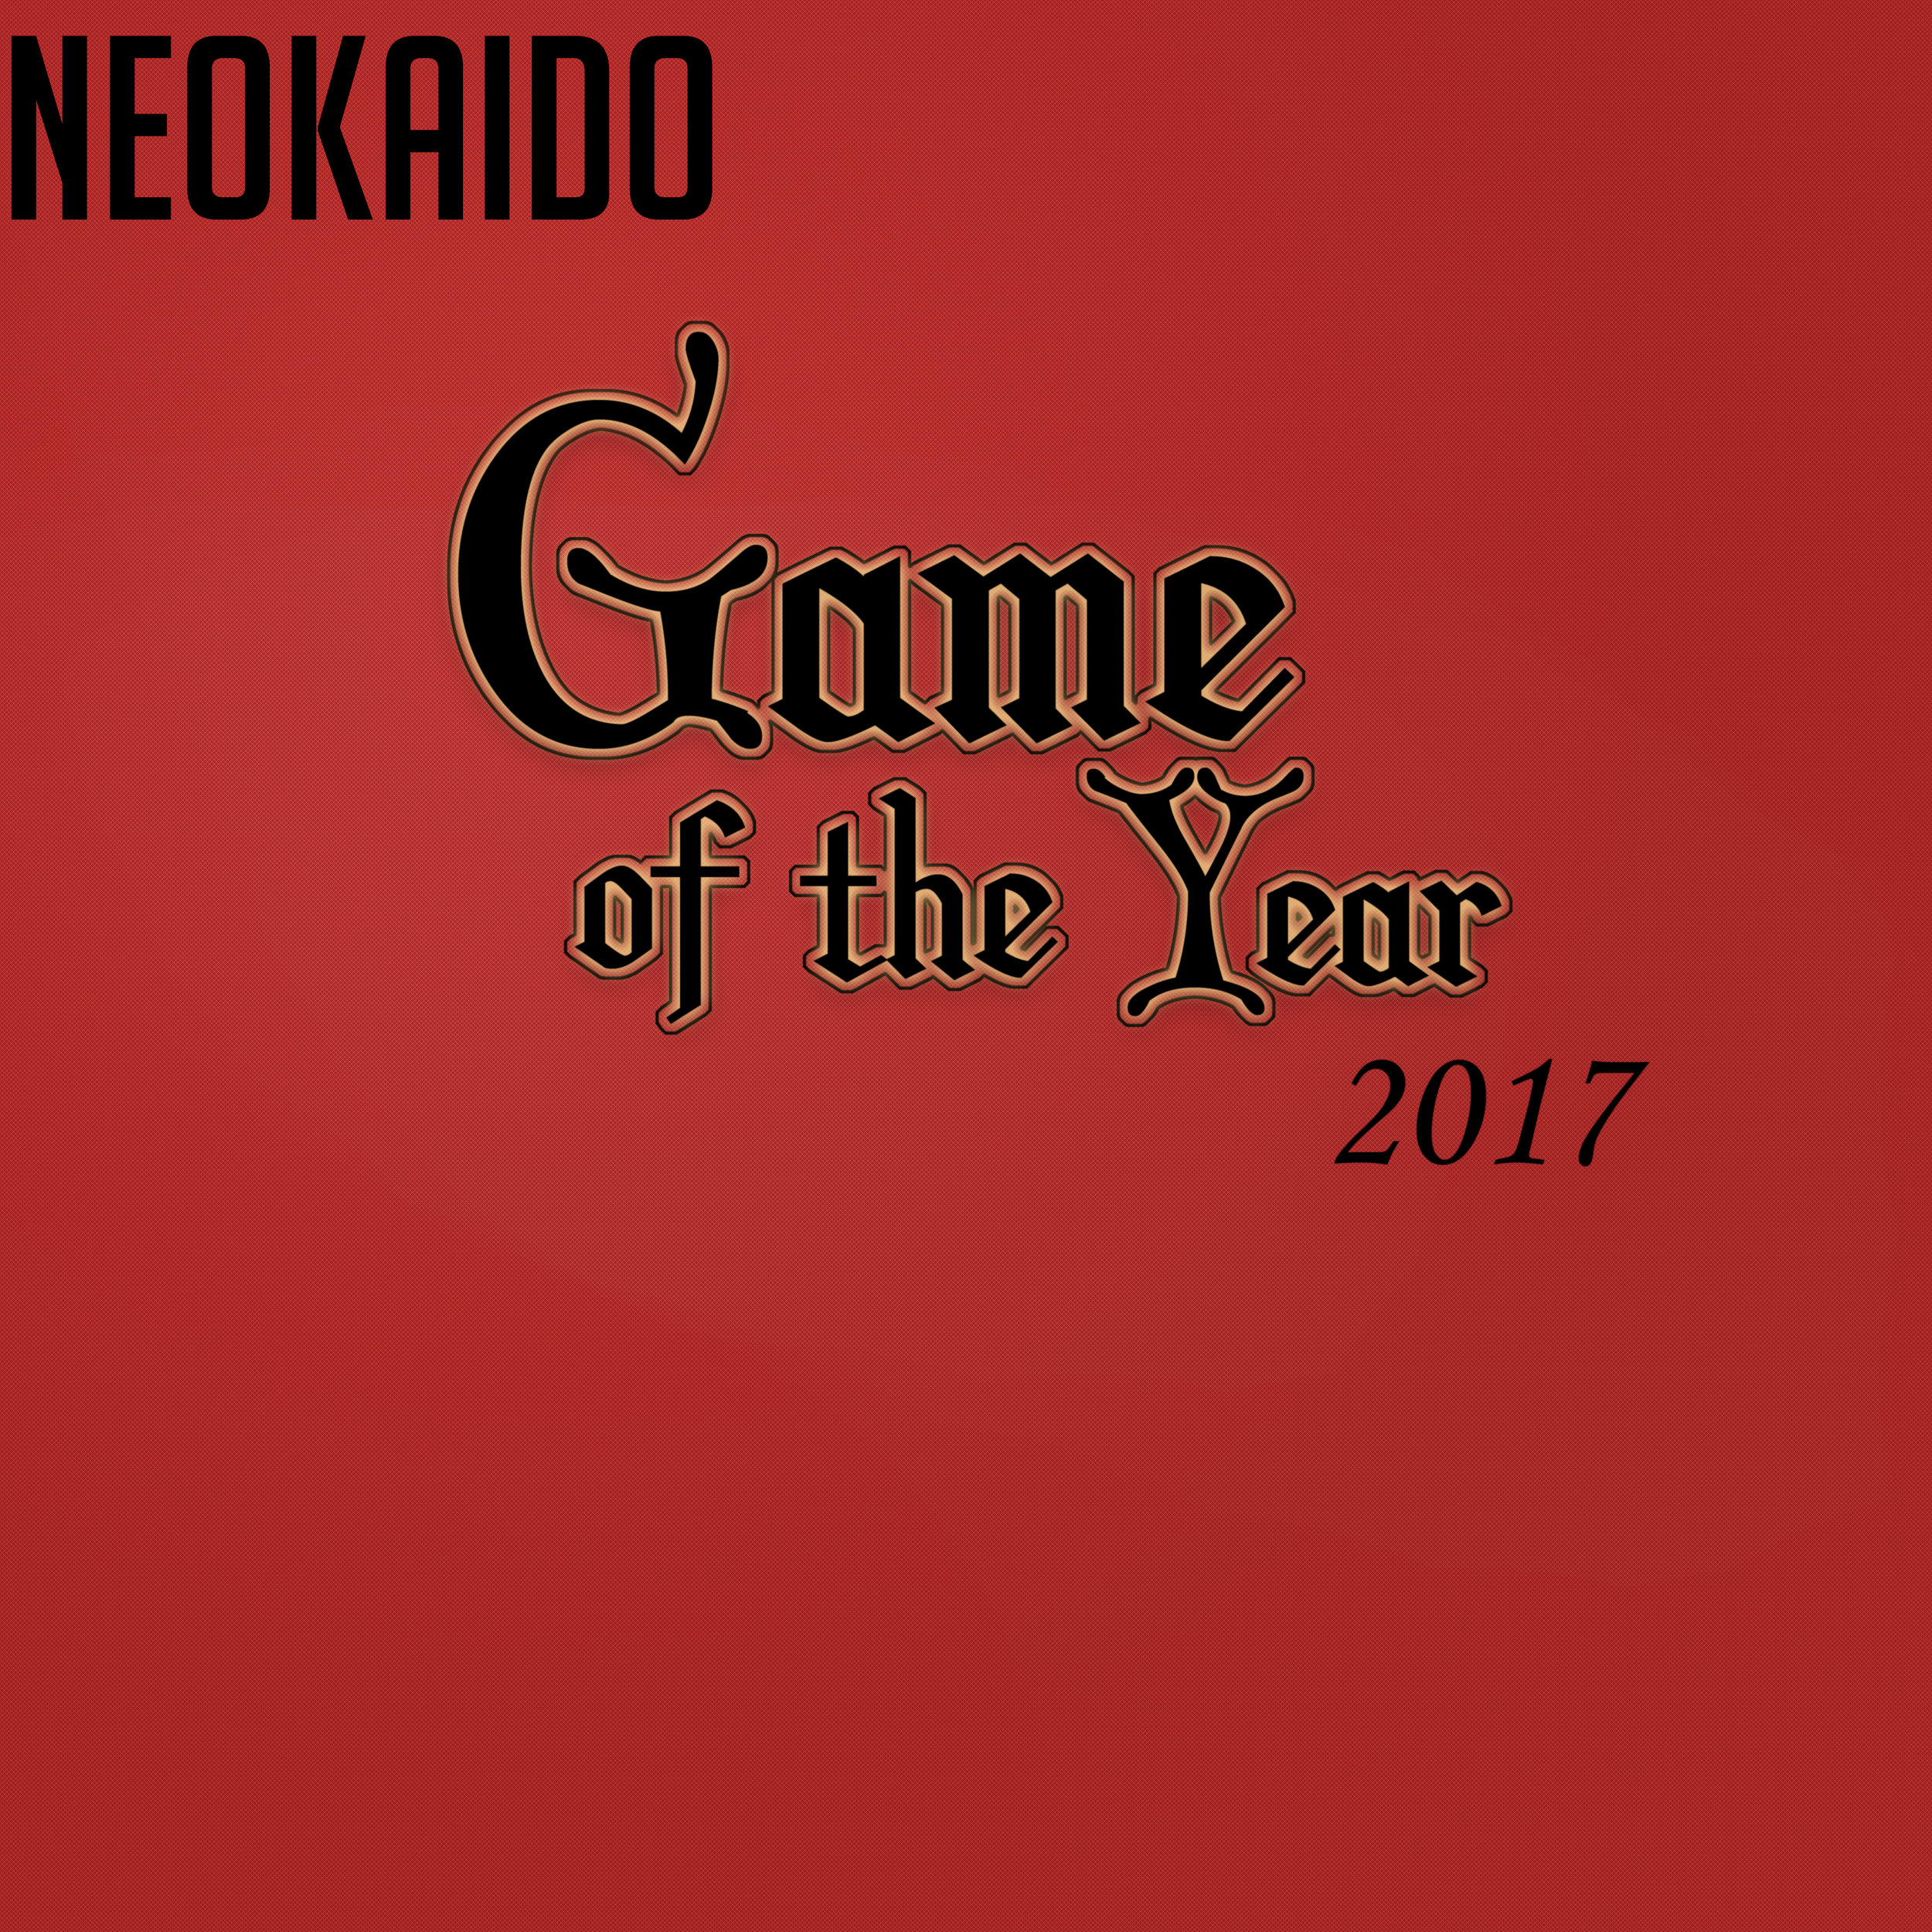 Neokaido Game of the Year 2017 (Part 2-1) - Sorry for breaking the episodes into pieces, but this is the first part of day two; that means we are discussing Best New Character and Best Writing. Enjoy!